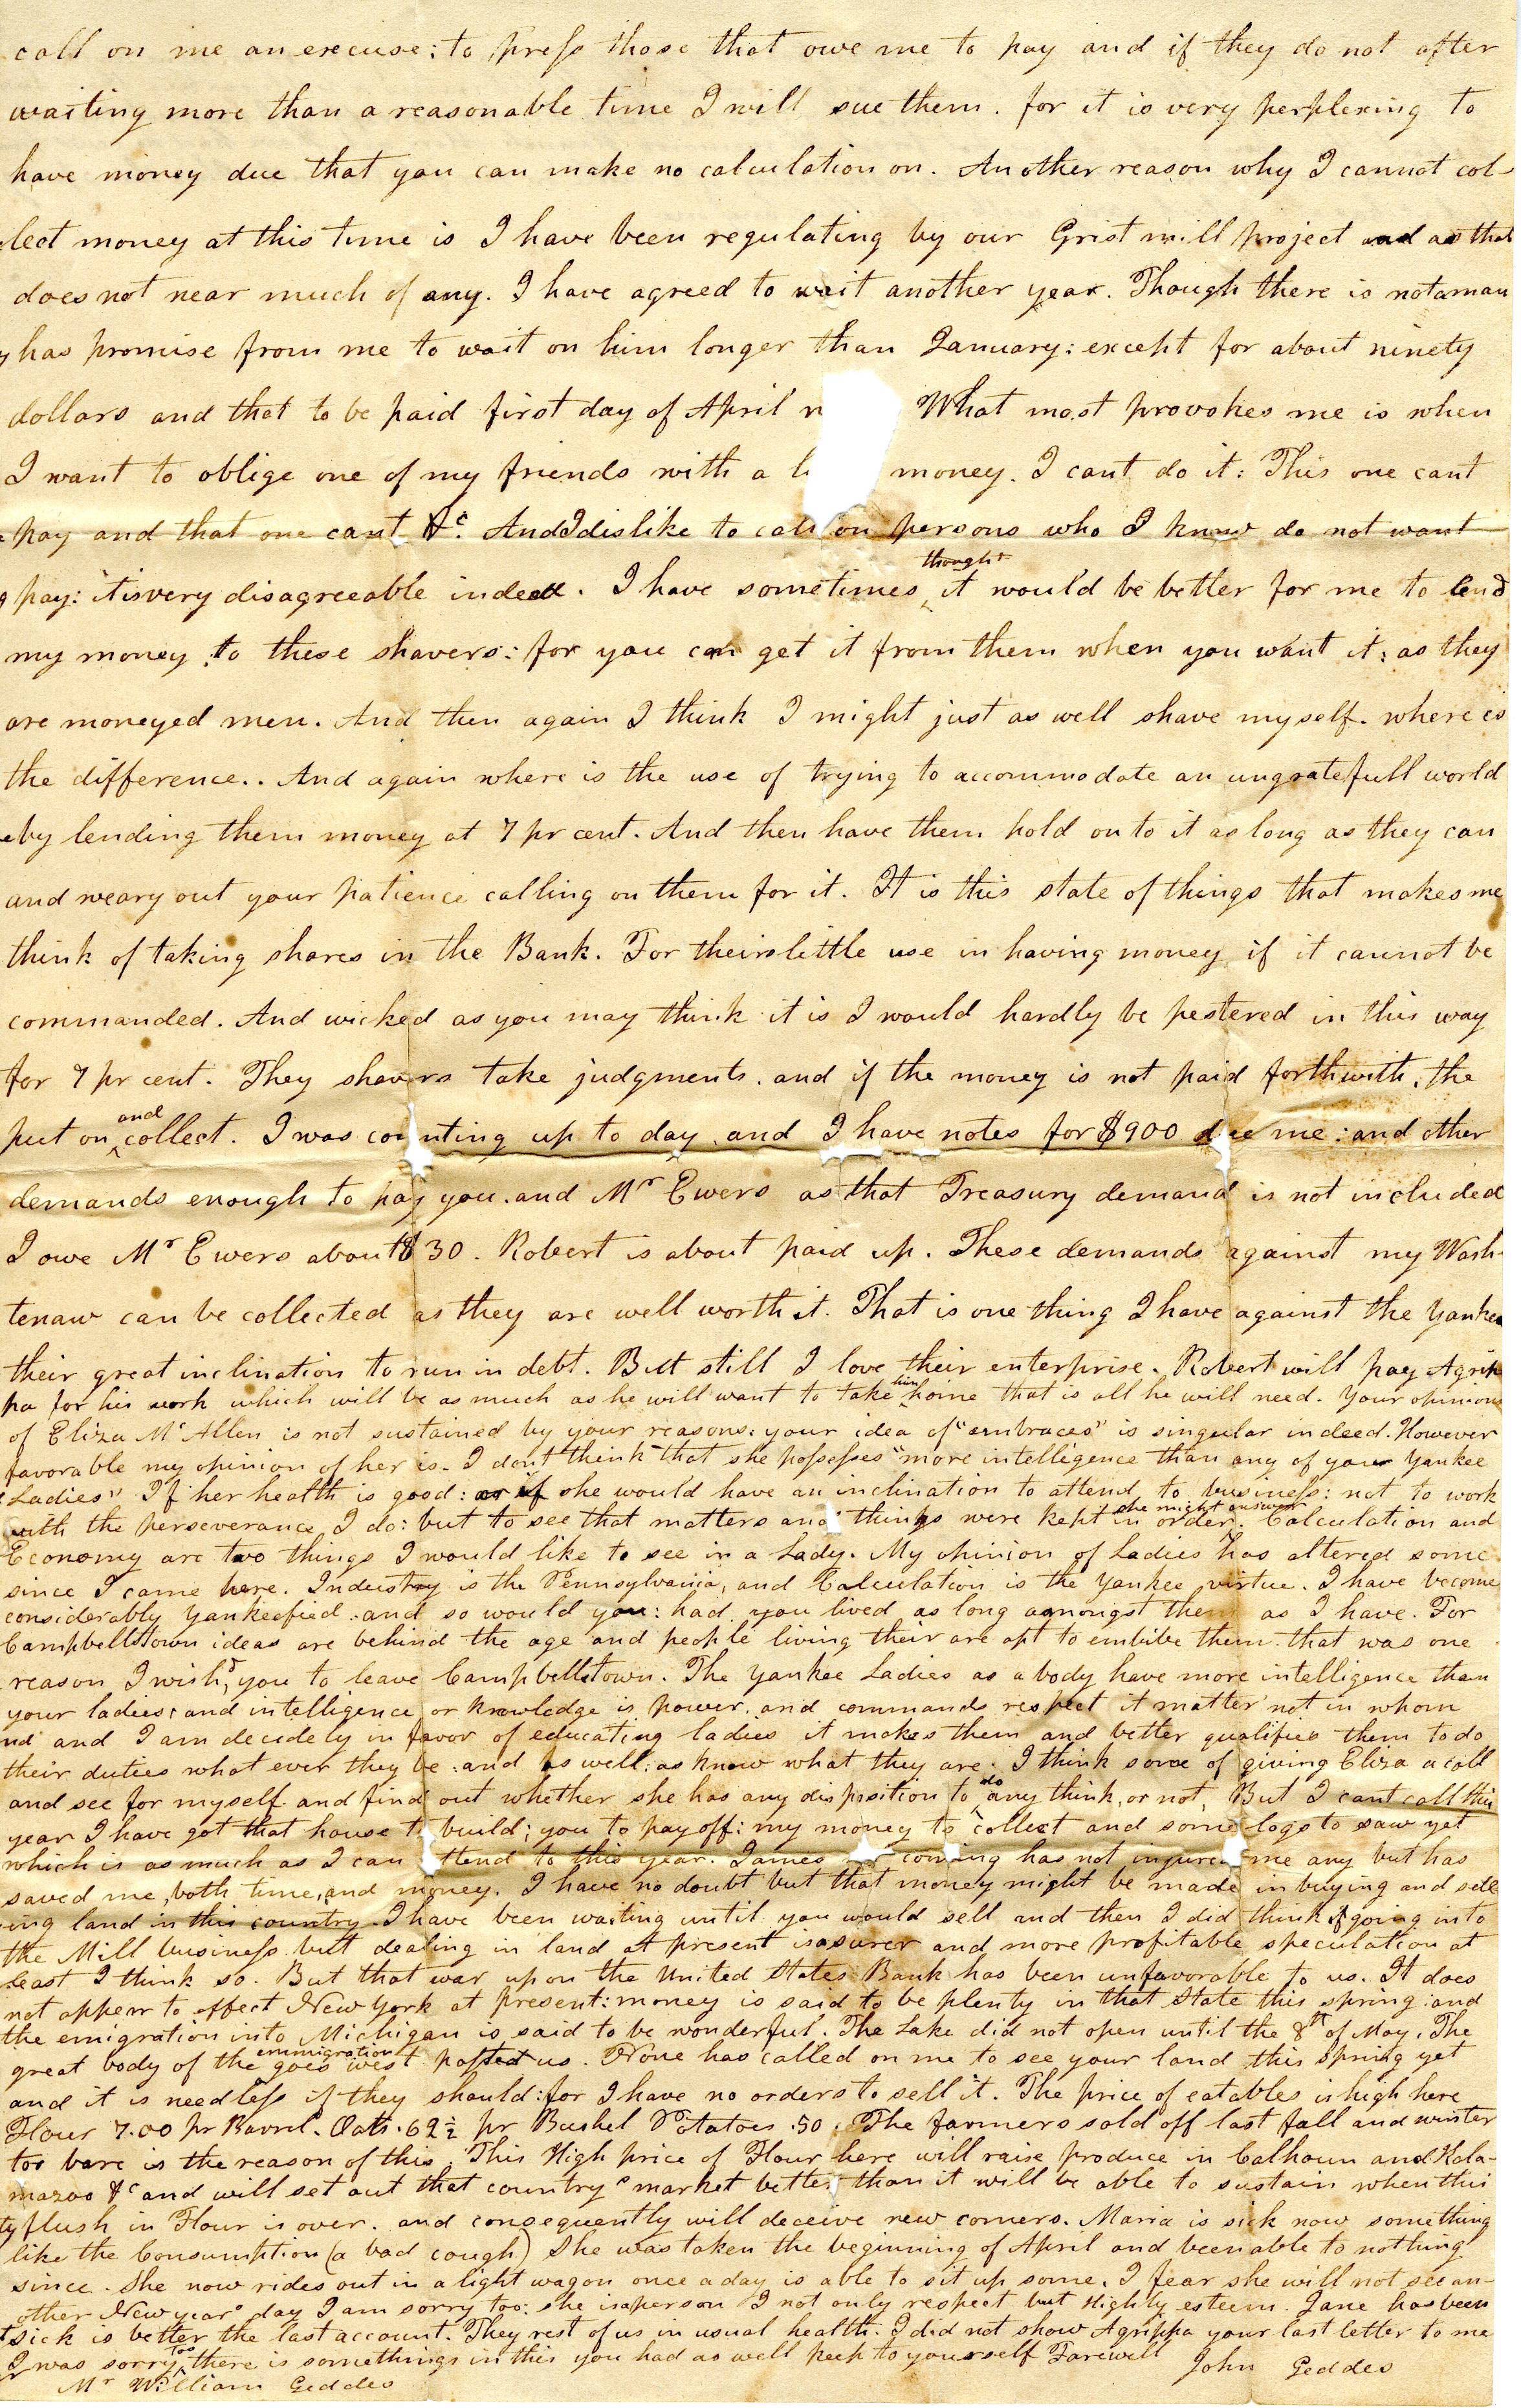 Letter From John Geddes to William Geddes, May 27, 1835 image